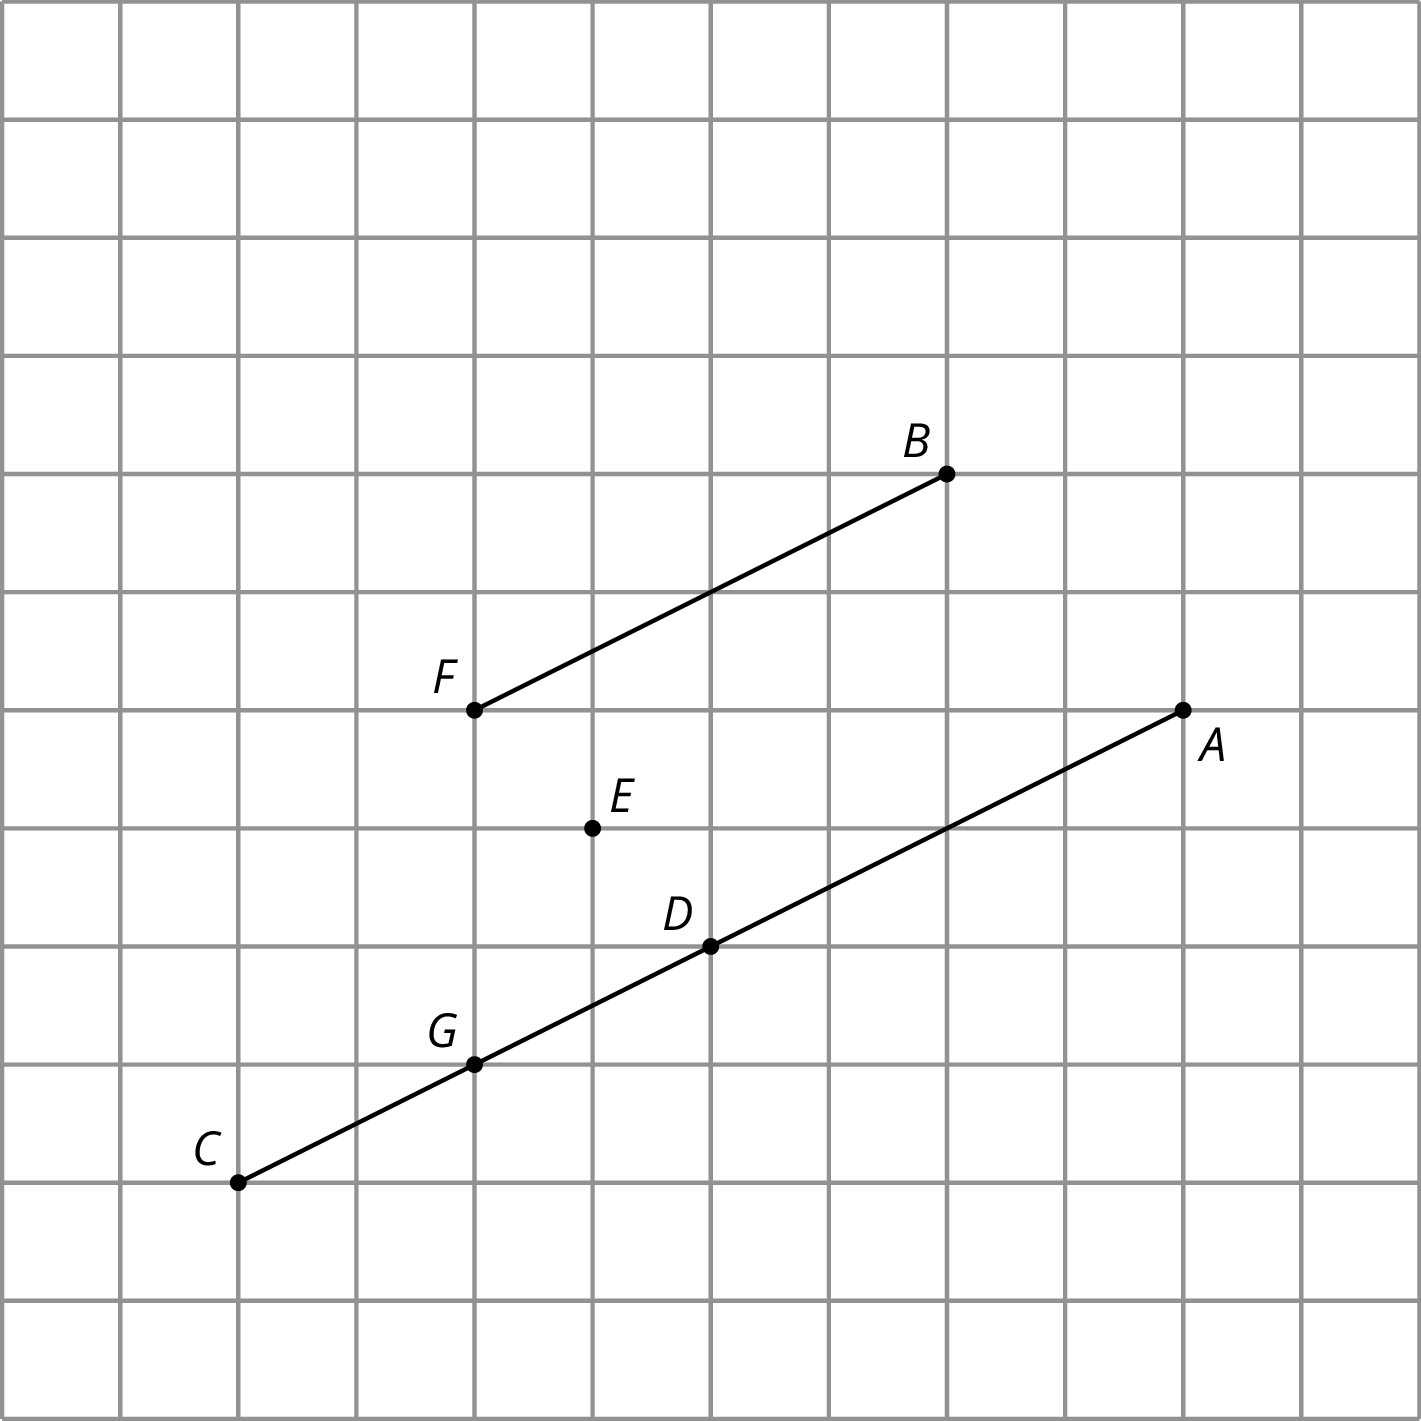 hight resolution of the new segment may change its location but it remains the same length the new segment is parallel to the original segment when the point of rotation is